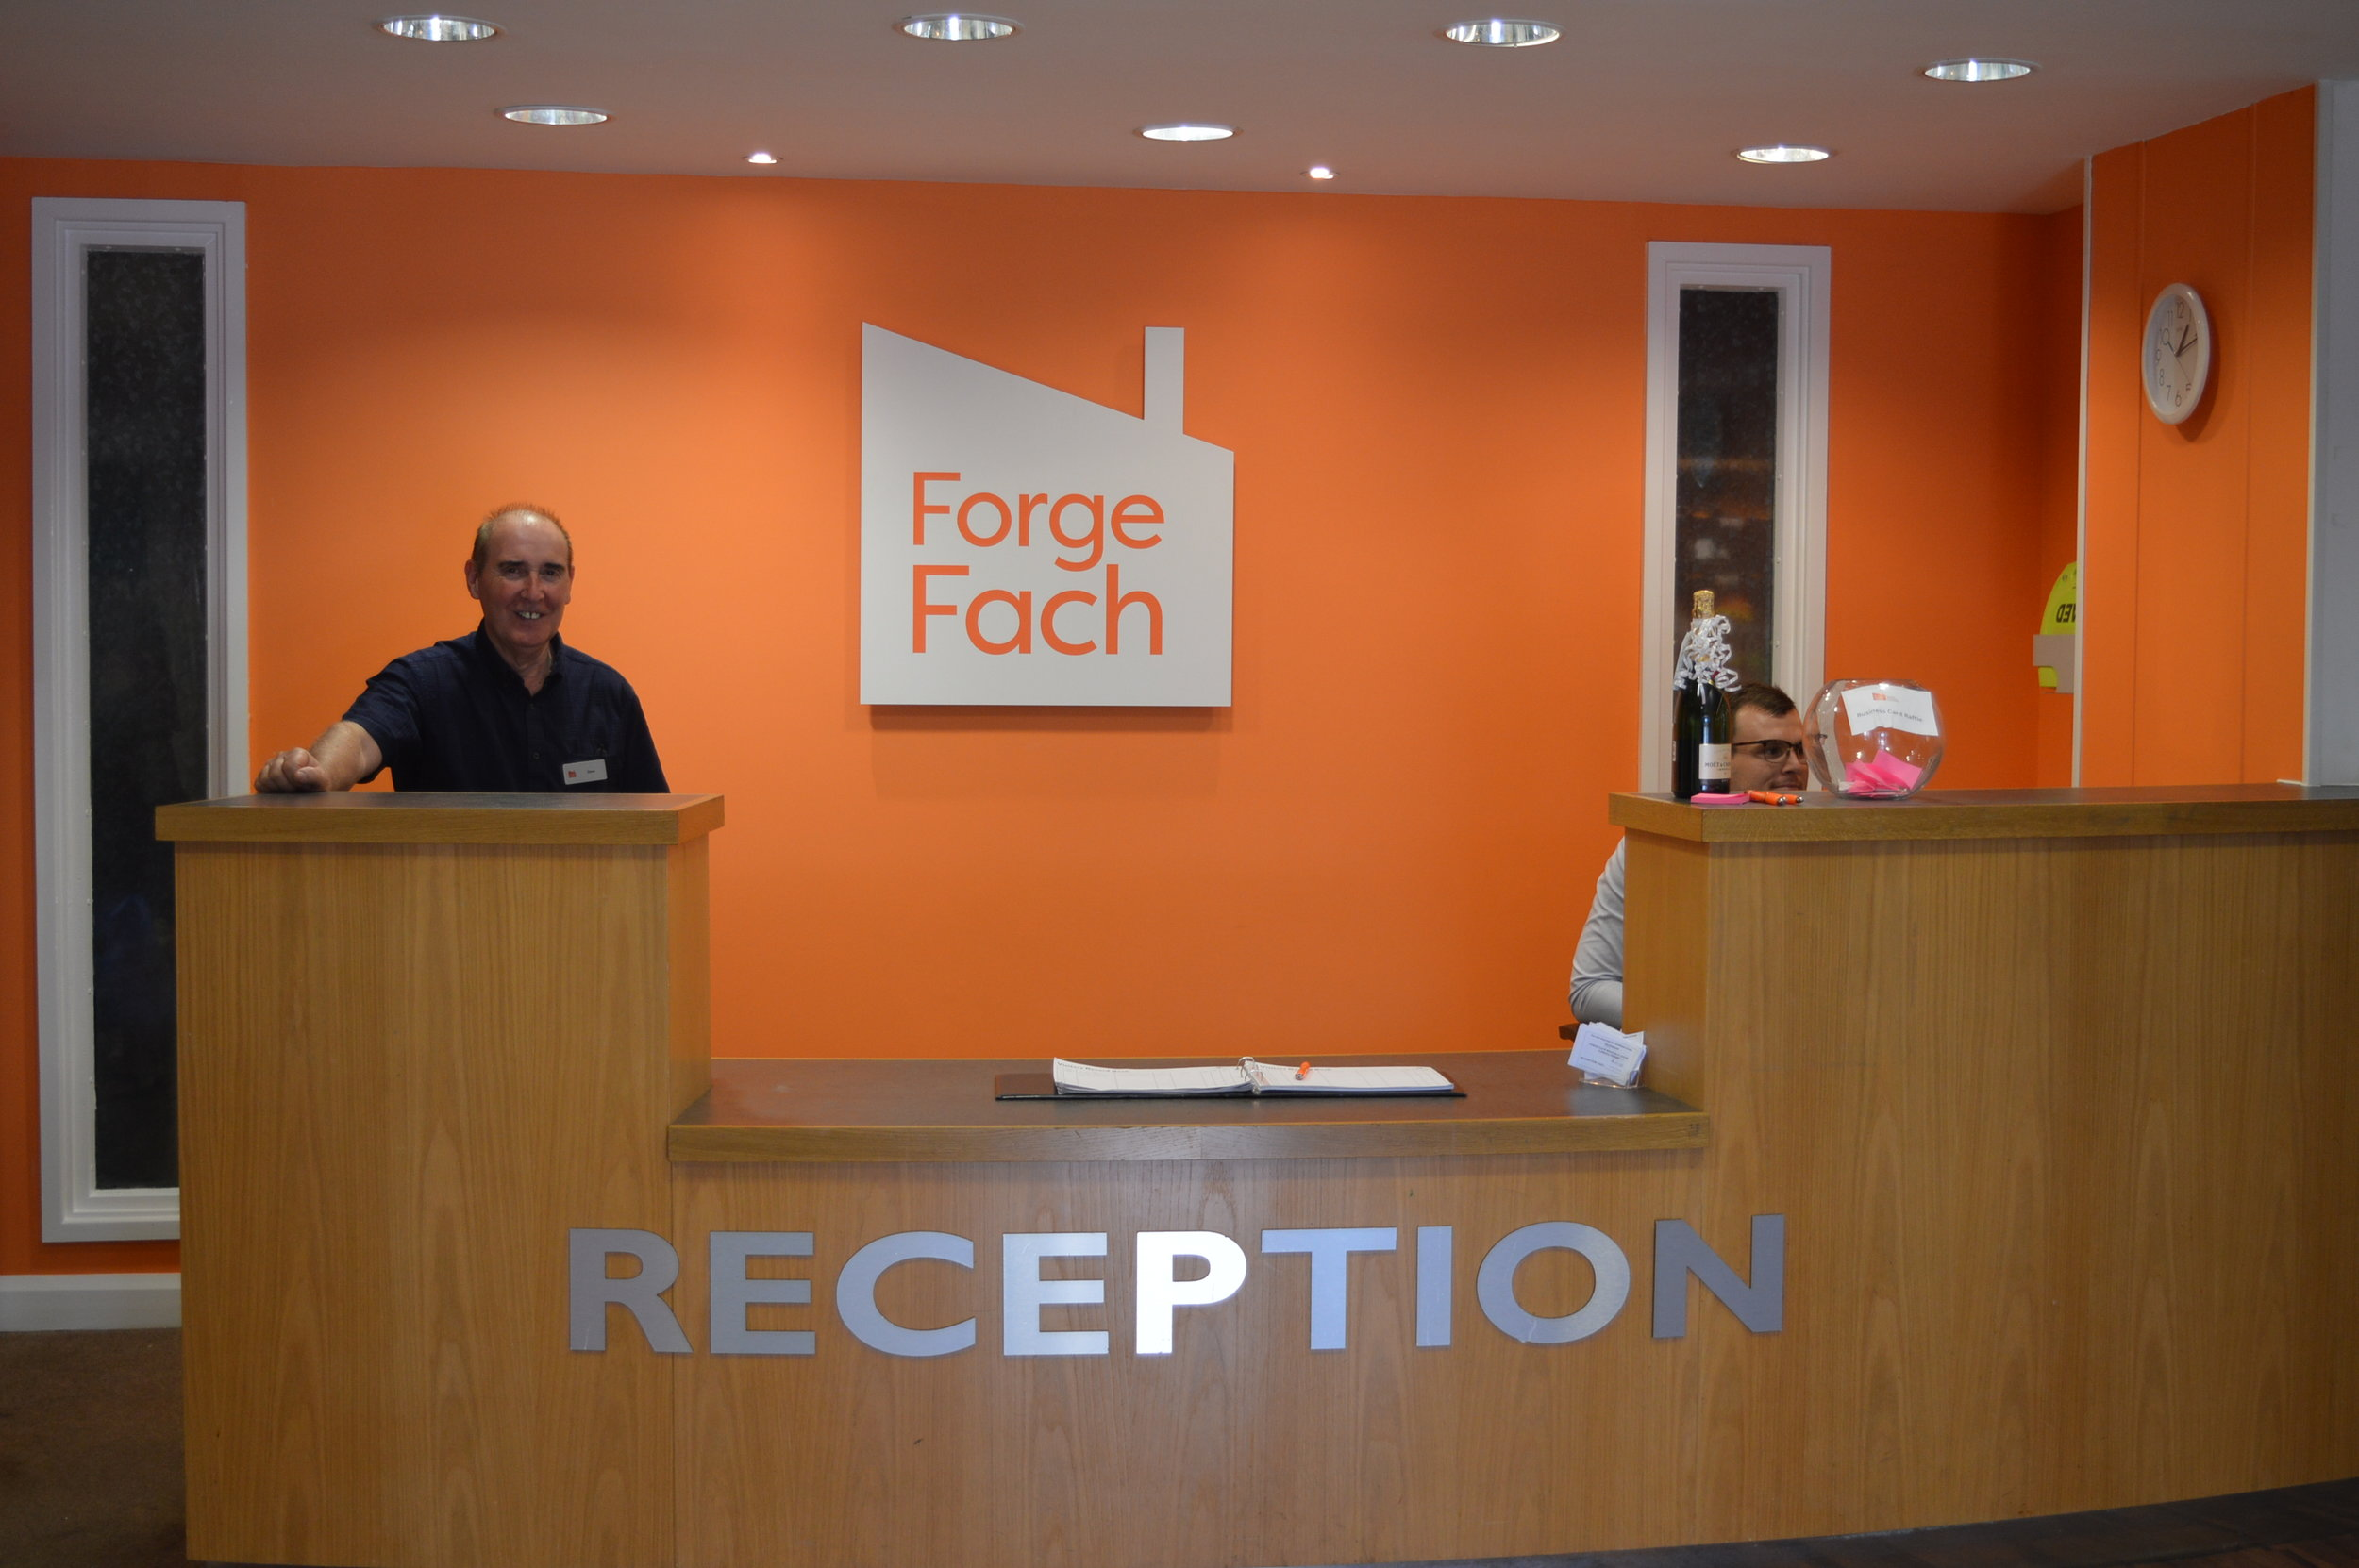 There is awlays a warm welcome awaiting you at Forge Fach